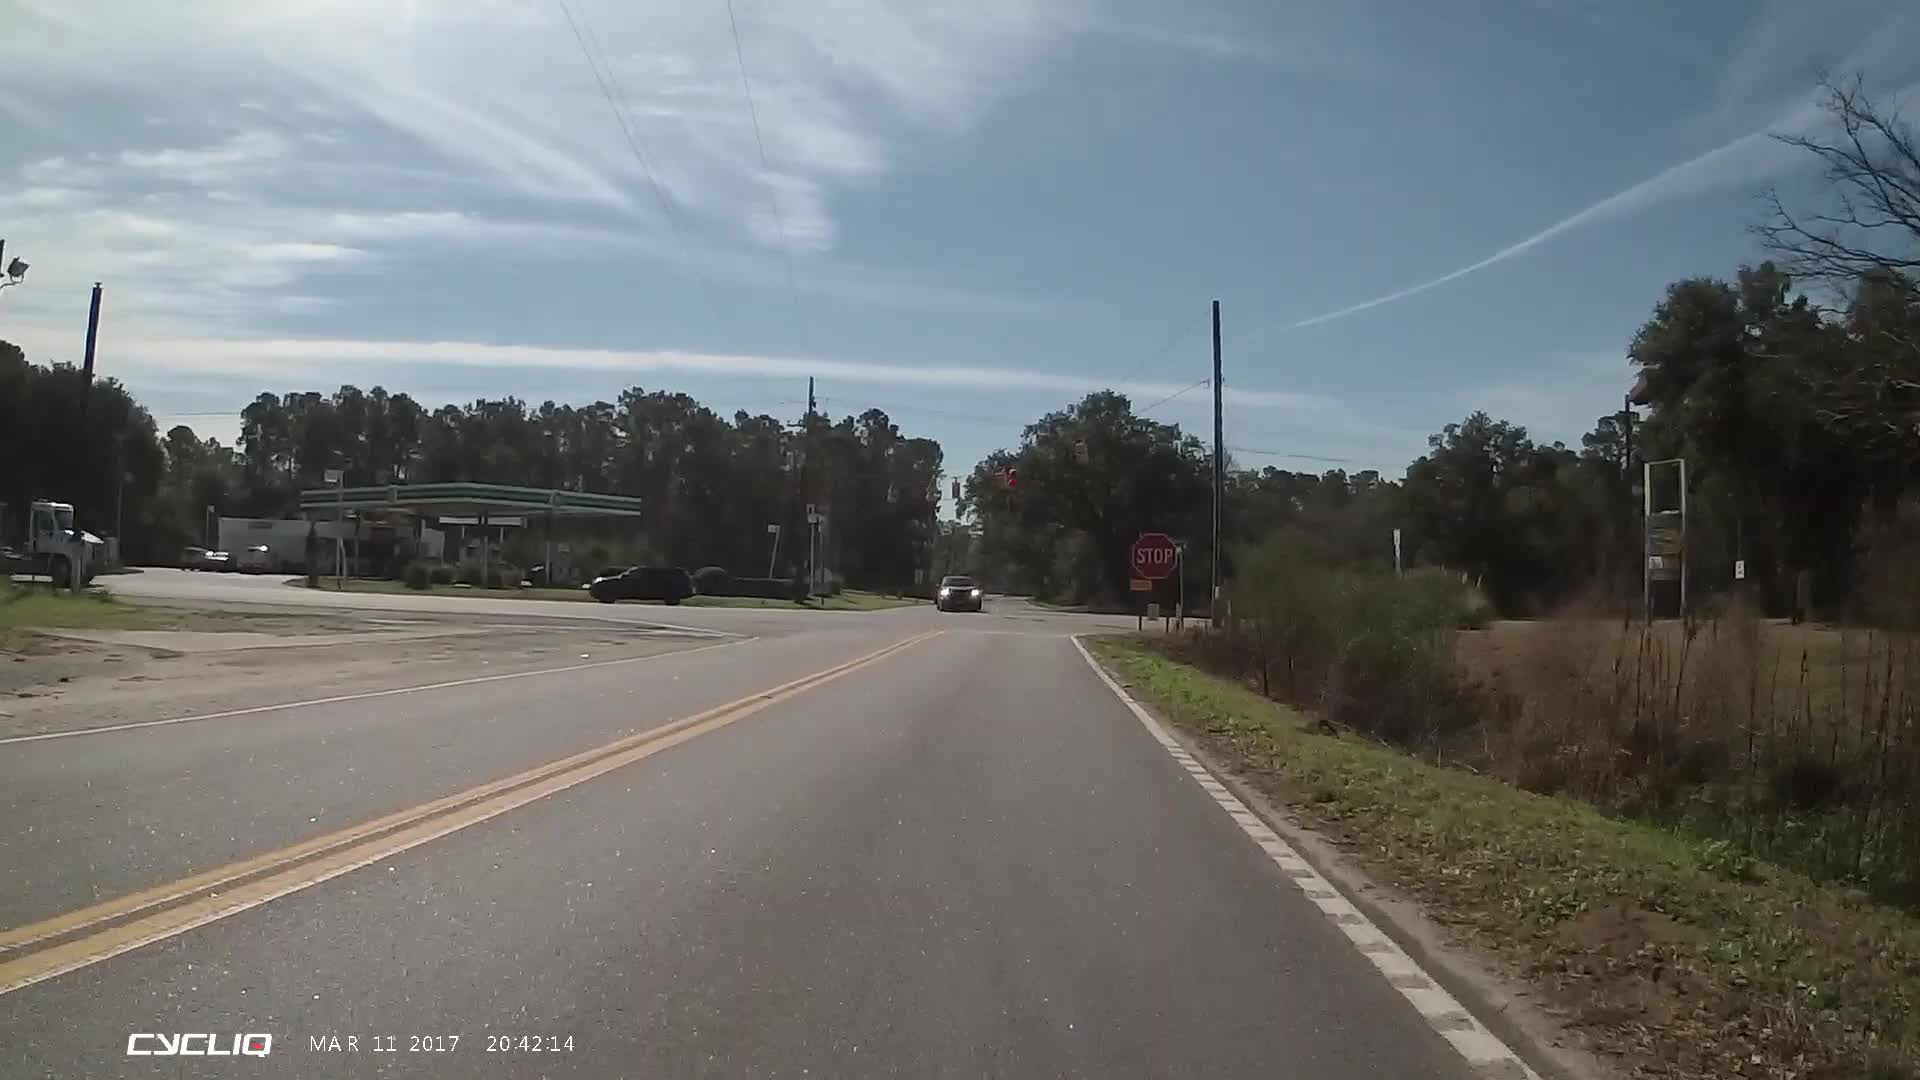 #cycling #idiotsincars #ididntseehim #payattentionbehindthew, Luke Wilson, People & Blogs, dashcam, Idiots in Cars: Another case of cyclist blindness GIFs